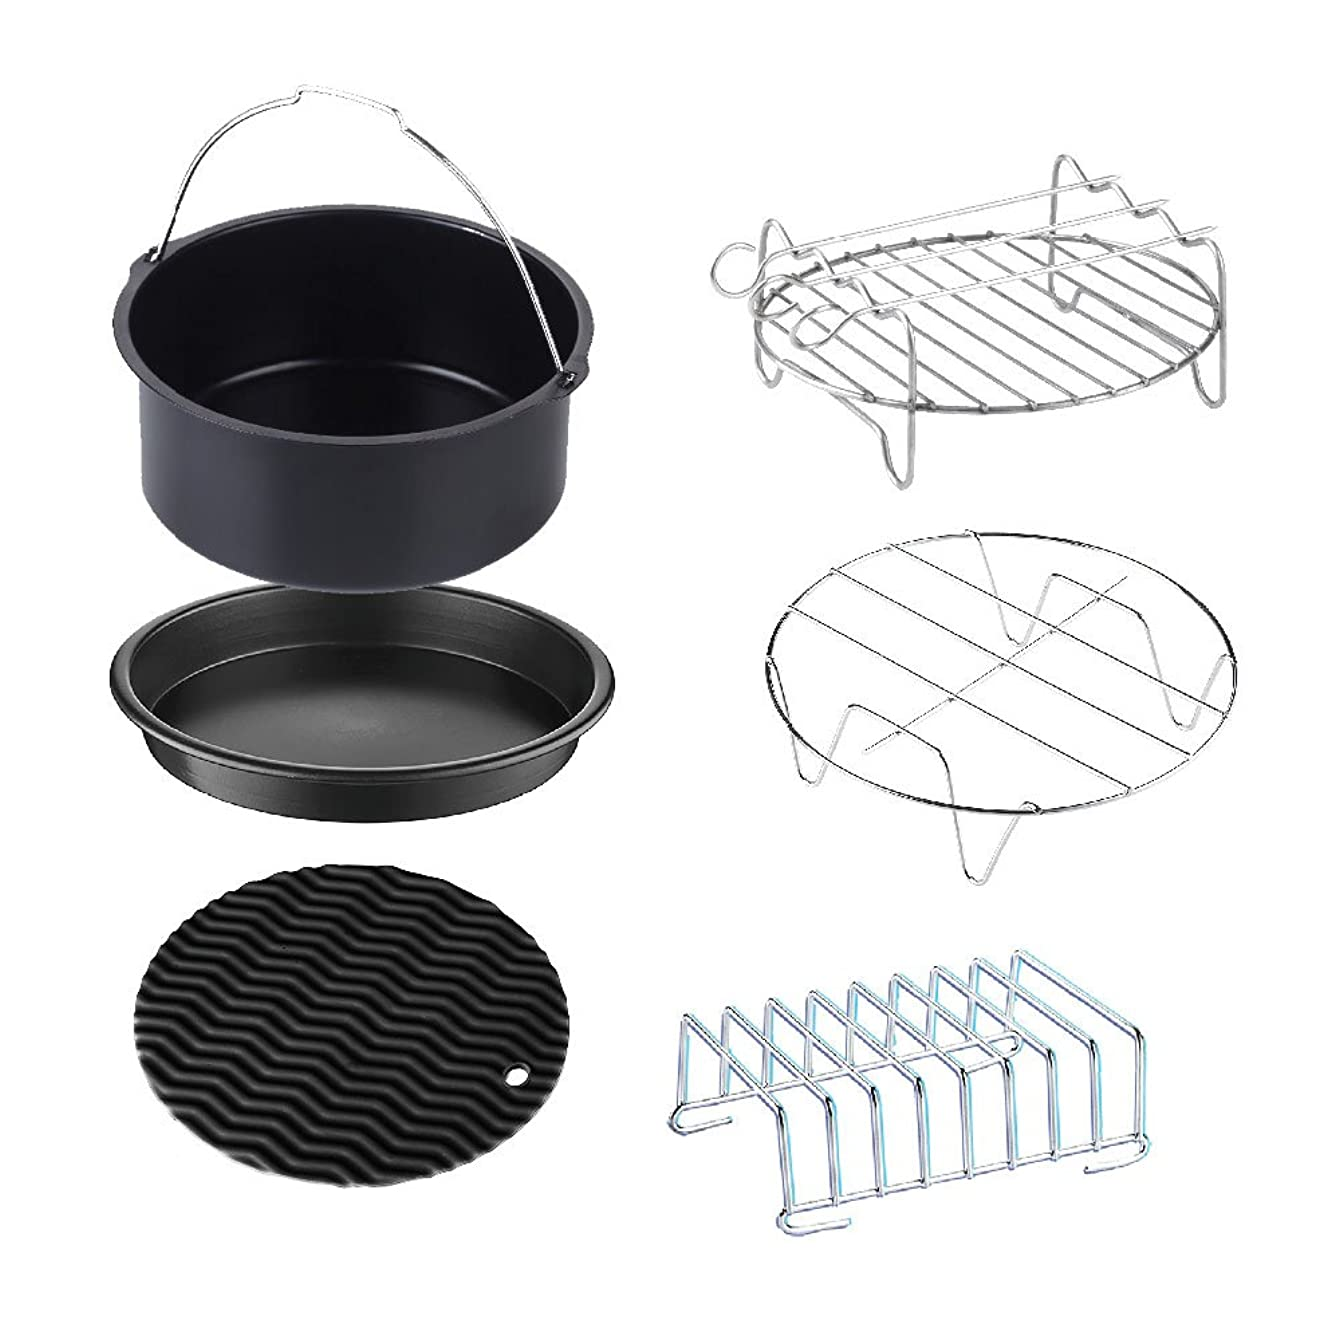 XL Air Fryer Accessories, 6pcs for GoWISE USA, Cosori Air Fryer Phillips, Power, Cozyna and more, best fit for 4.5-Quarts to 5.8-Quart Air Fryers (XL)